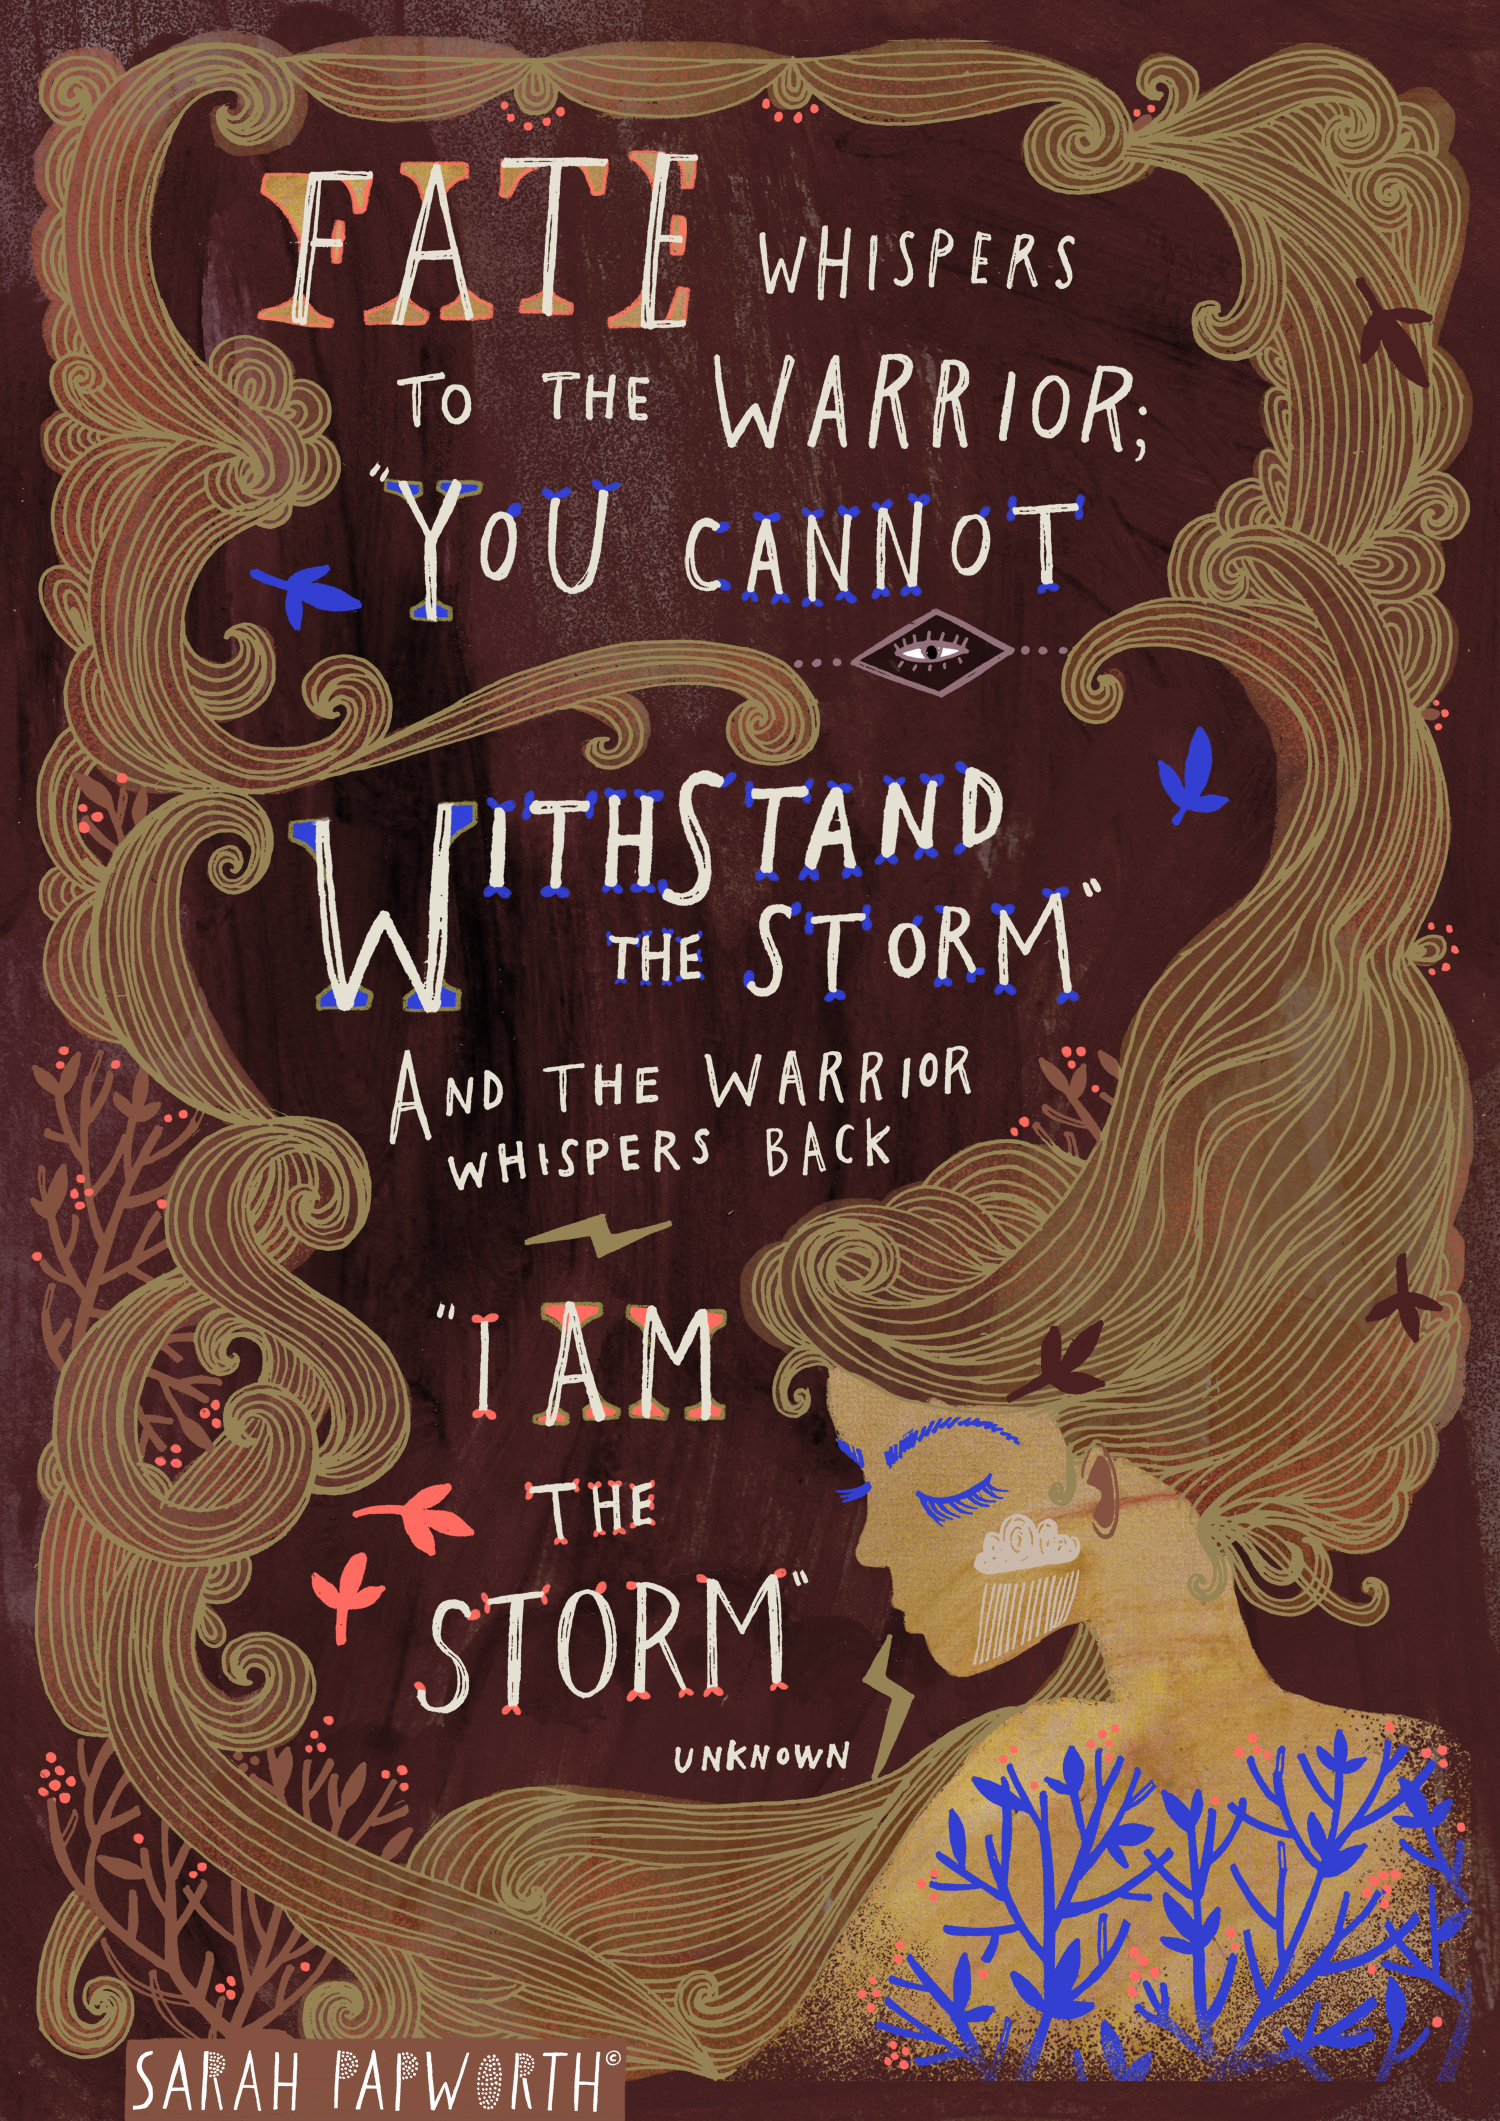 i am the storm quote illustrated quotes poems hand lettering sarah papworth.jpg